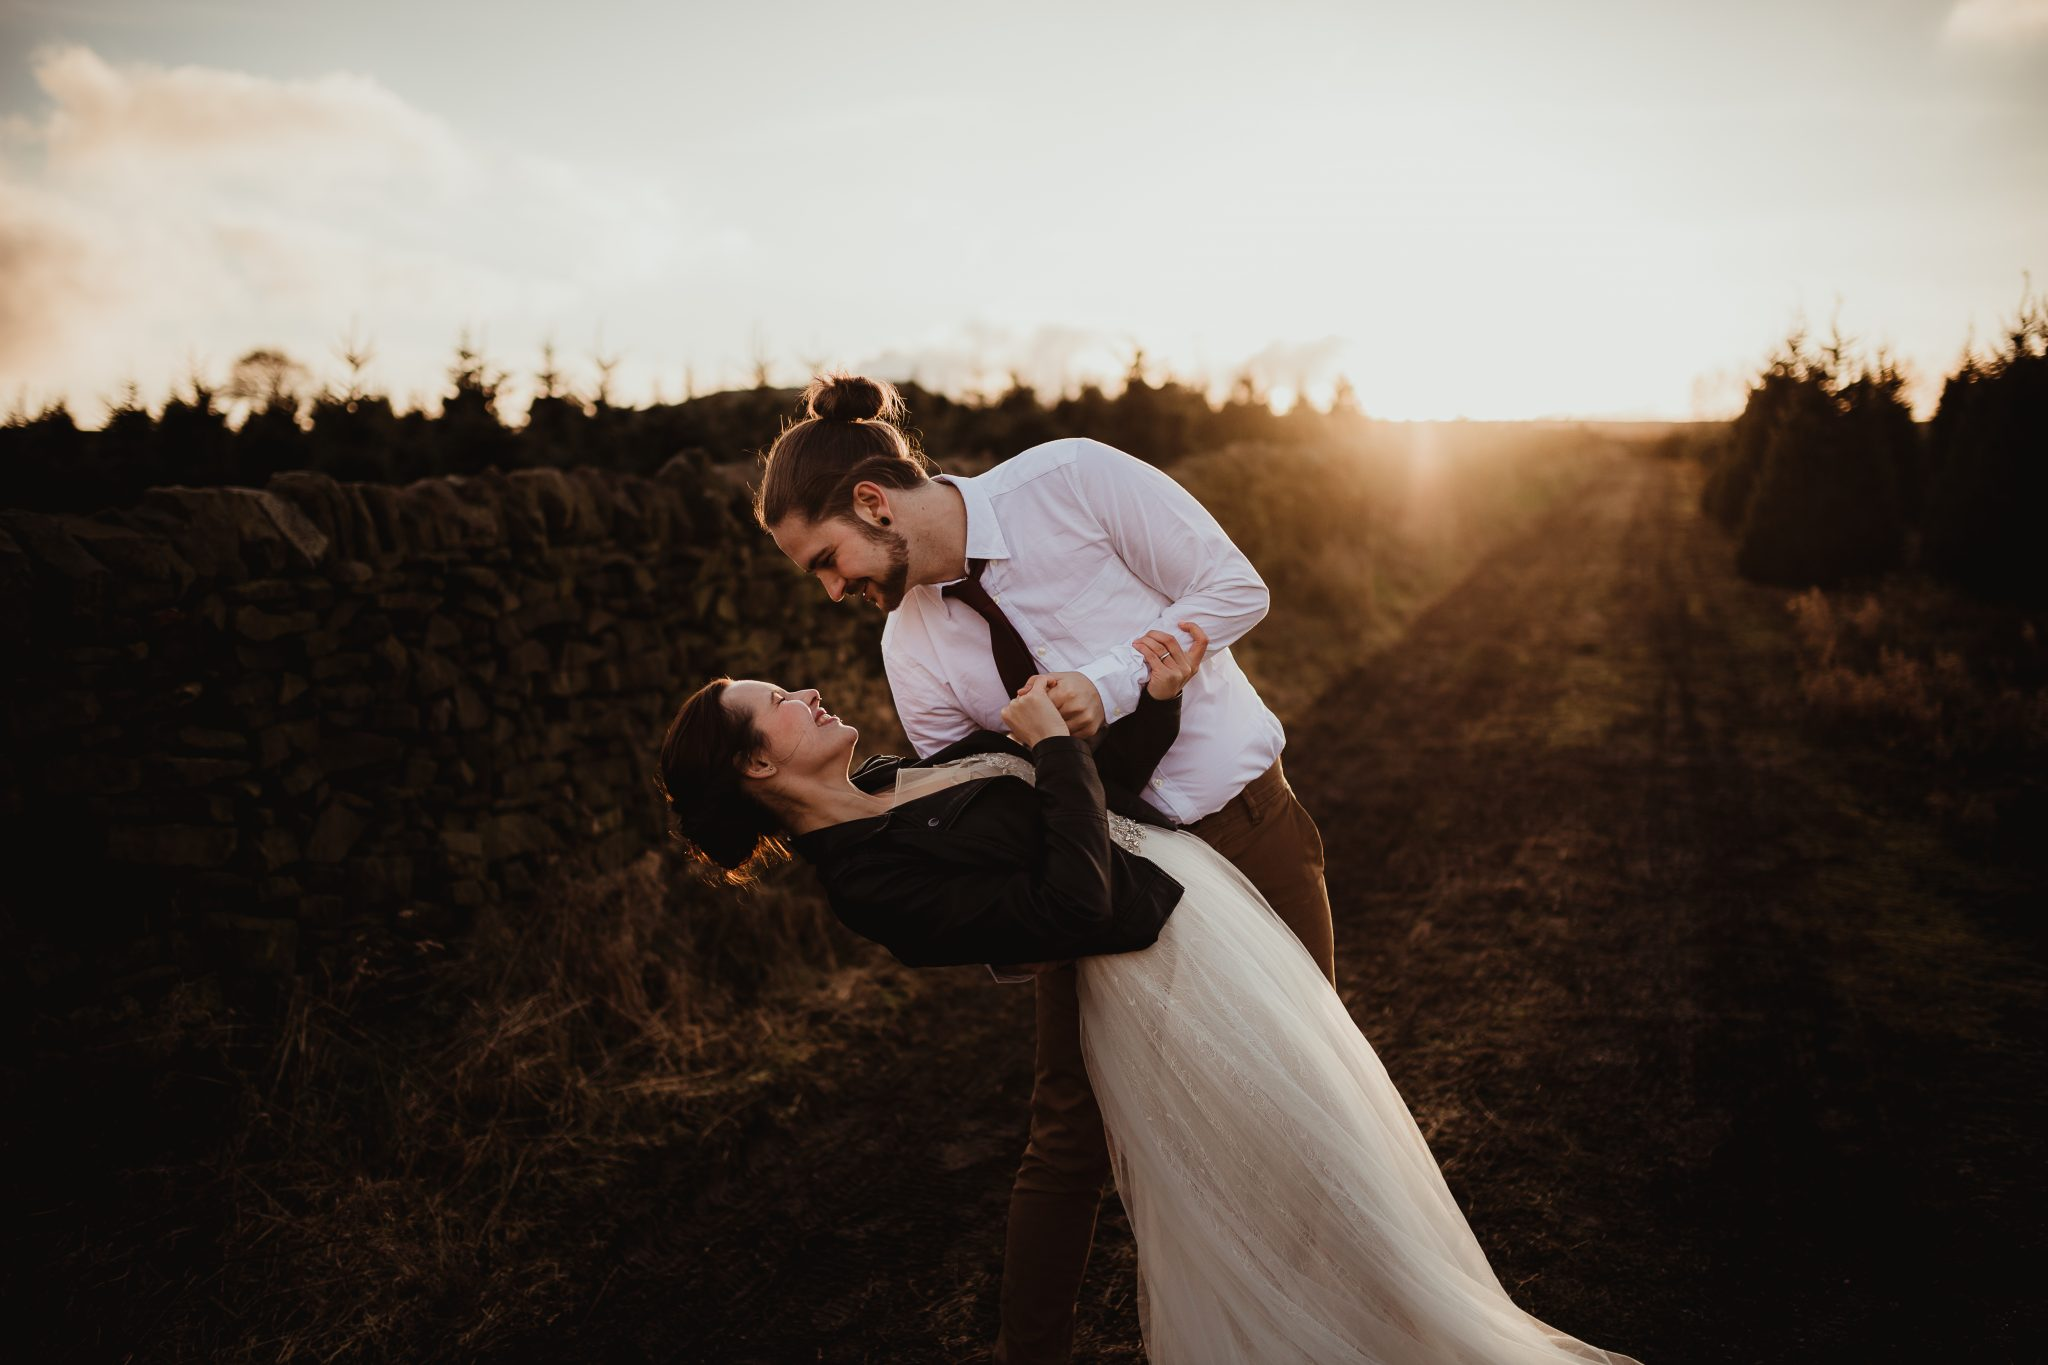 christmas elopement wedding- alternative wedding- christmas wedding- fly on the wall photography- wedding at a christmas tree farm- couple dancing outdoors